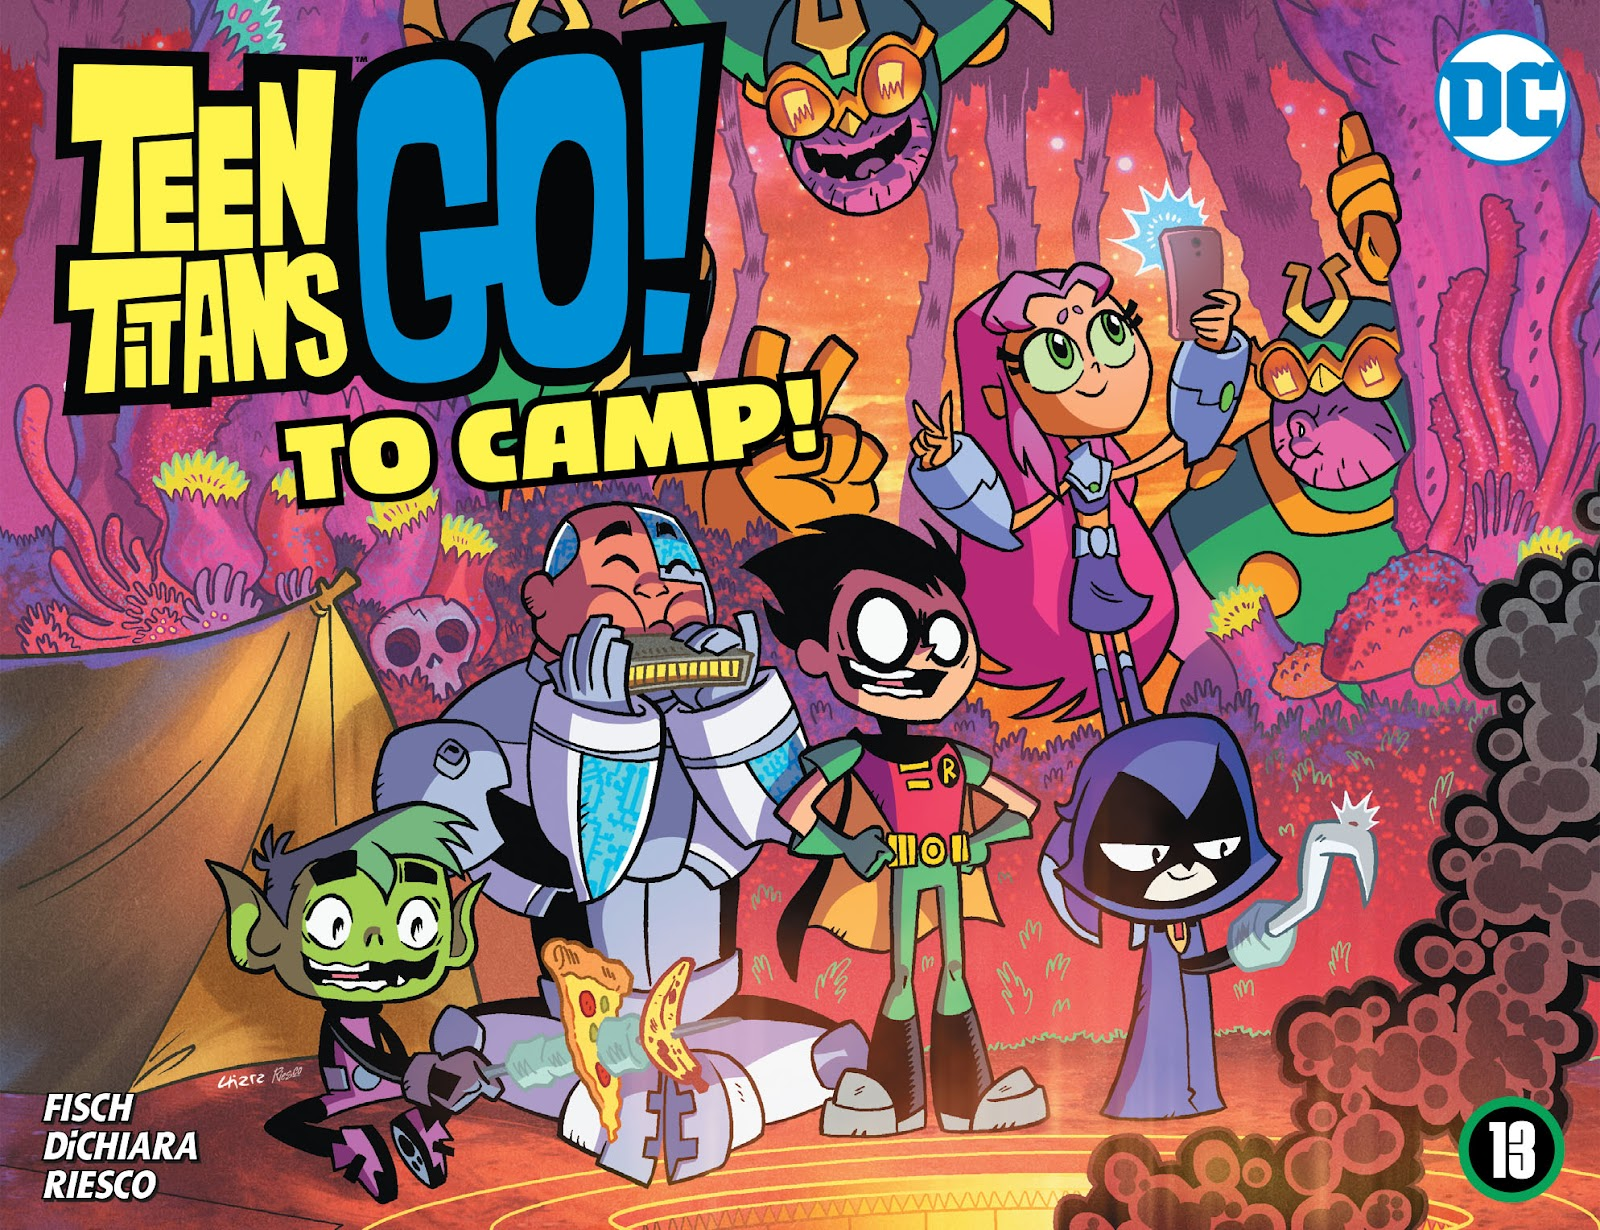 Teen Titans Go! To Camp issue 13 - Page 1